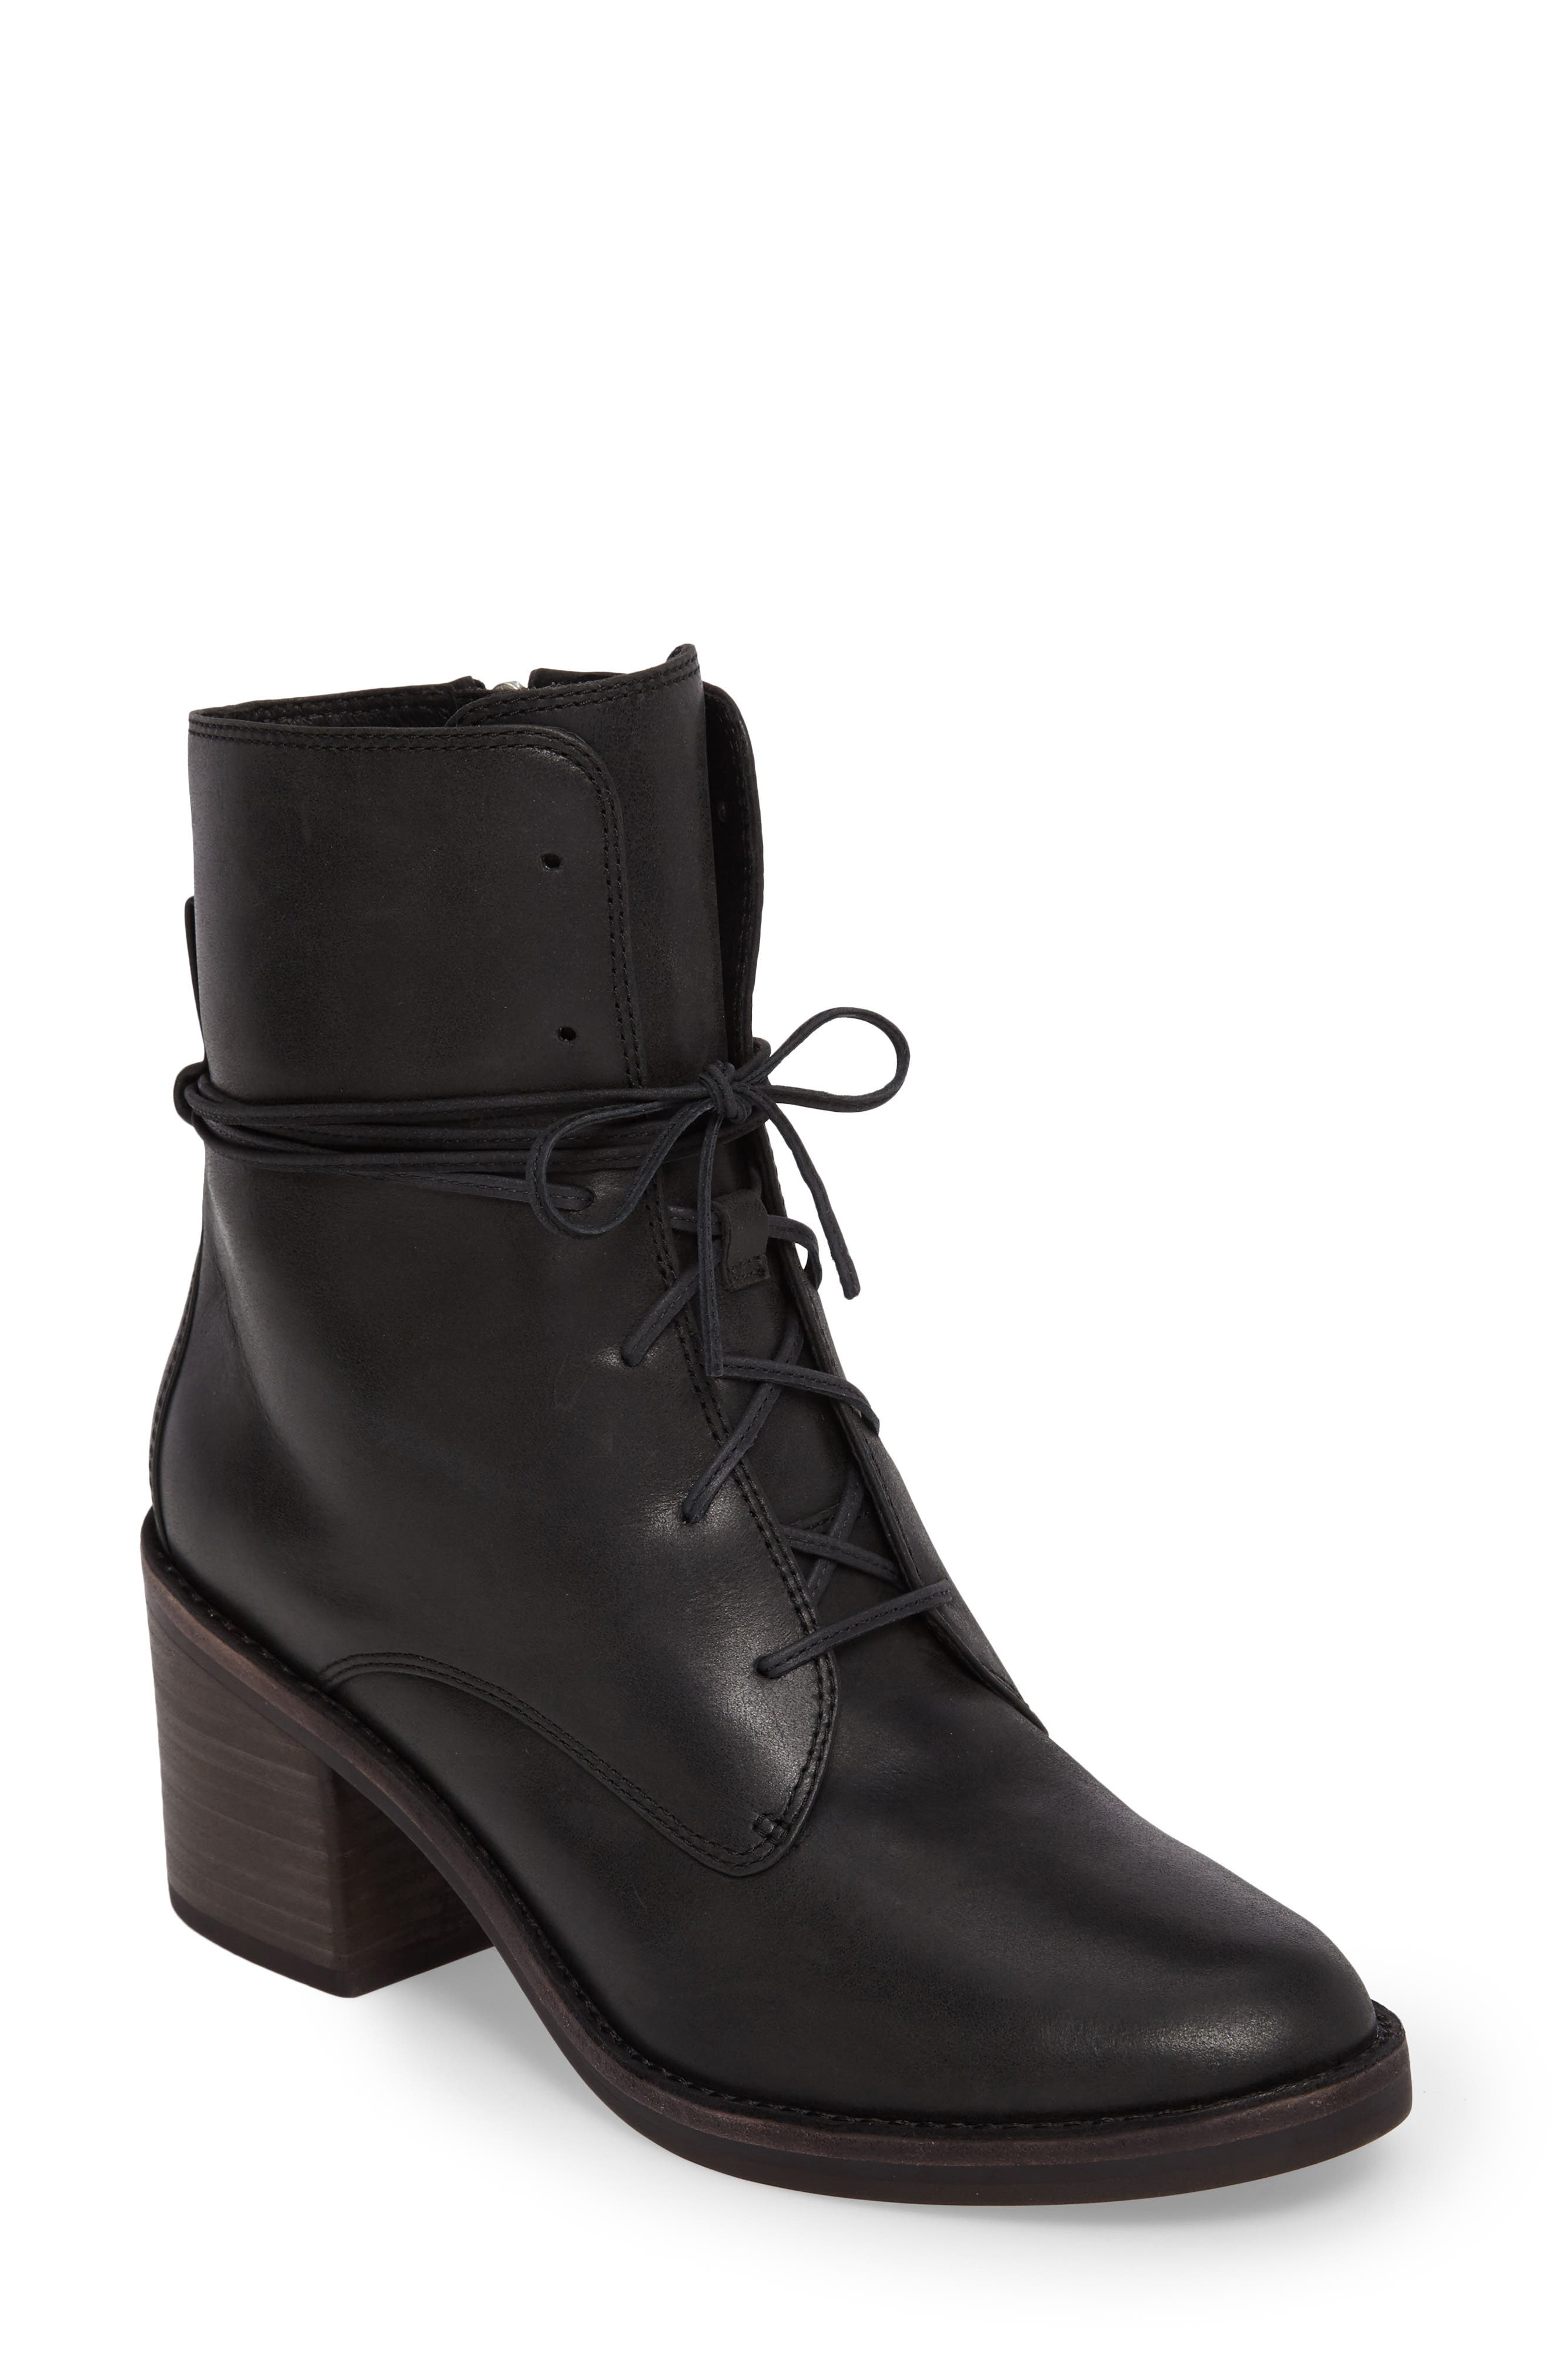 Oriana Lace-Up Boot,                         Main,                         color, Black Leather